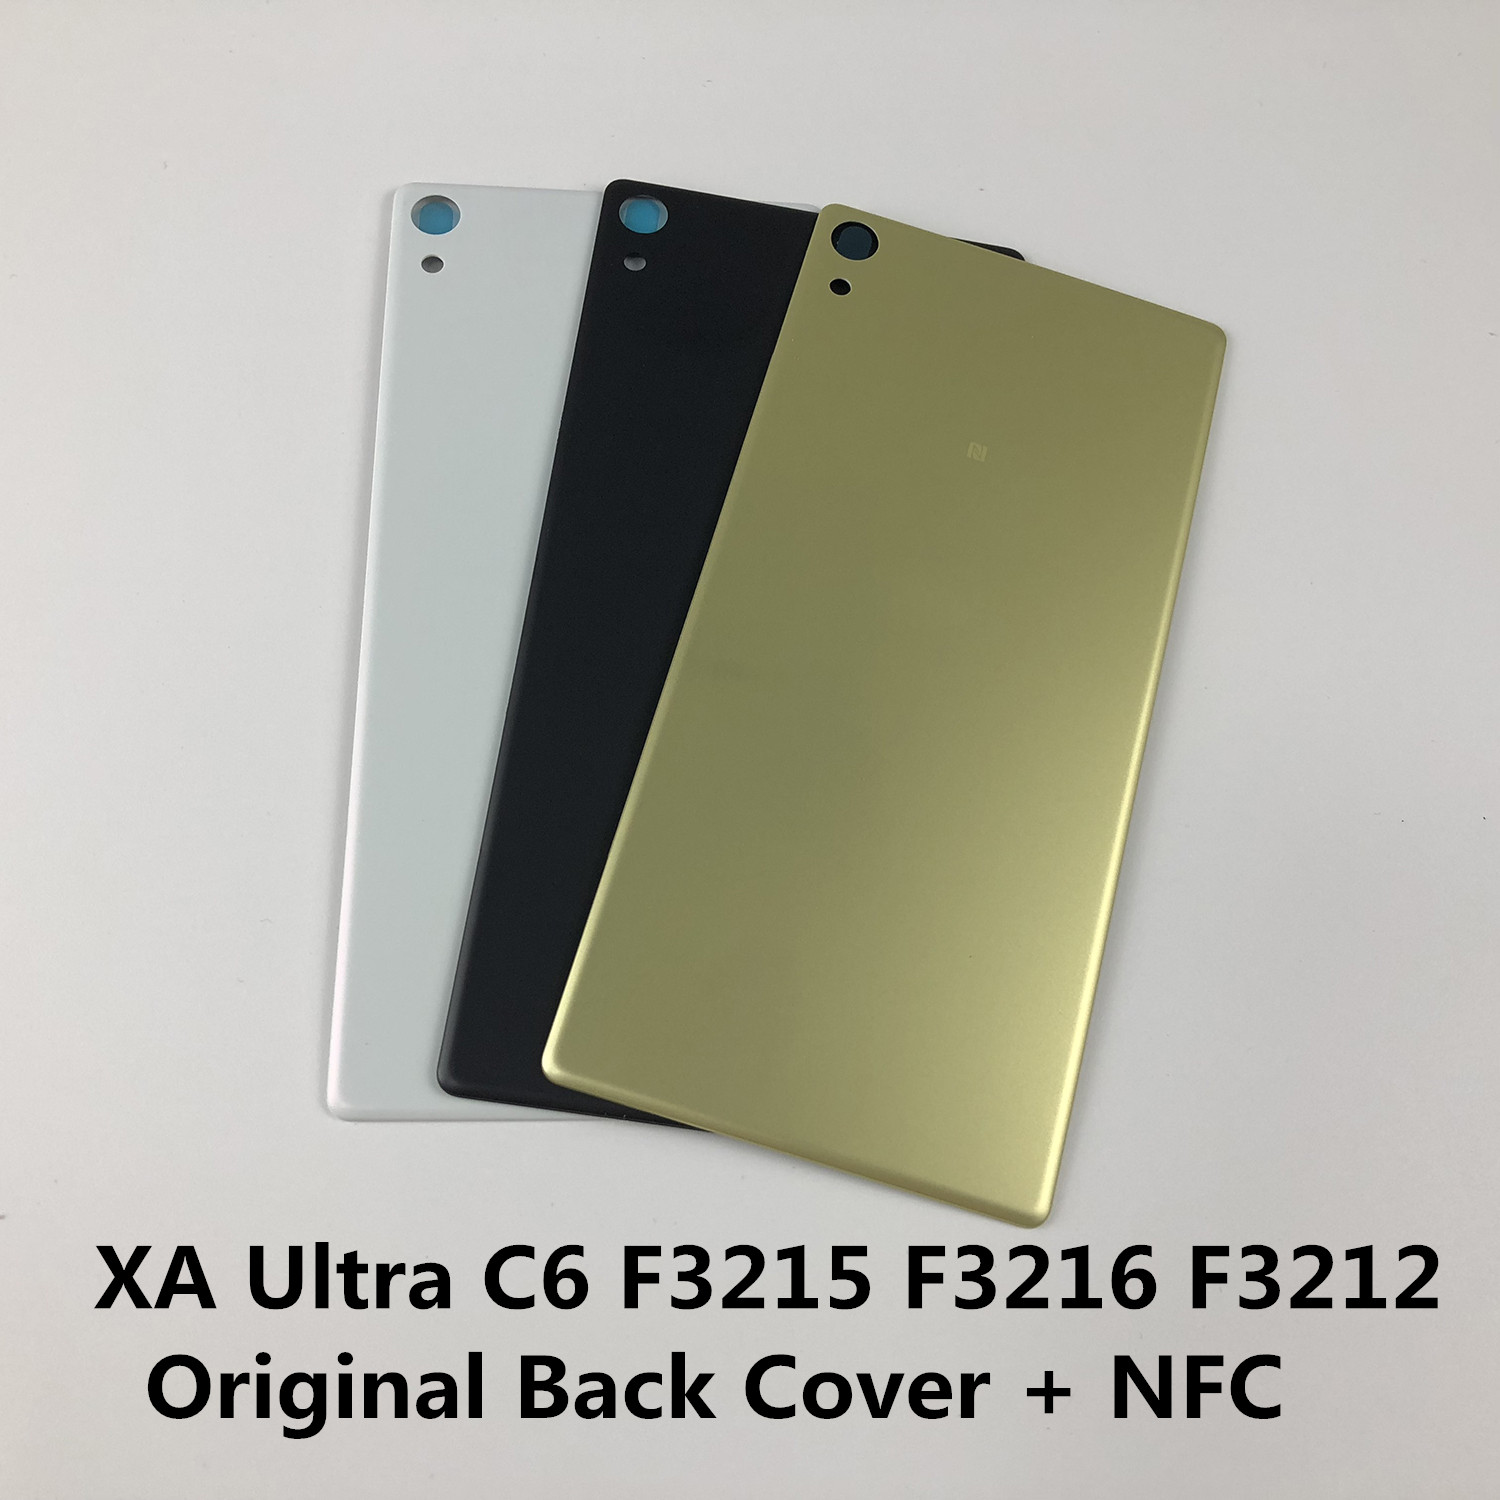 Original For SONY XPERIA XA Ultra C6 F3215 F3216 F3212 Housing Battery Back Cover + NFC